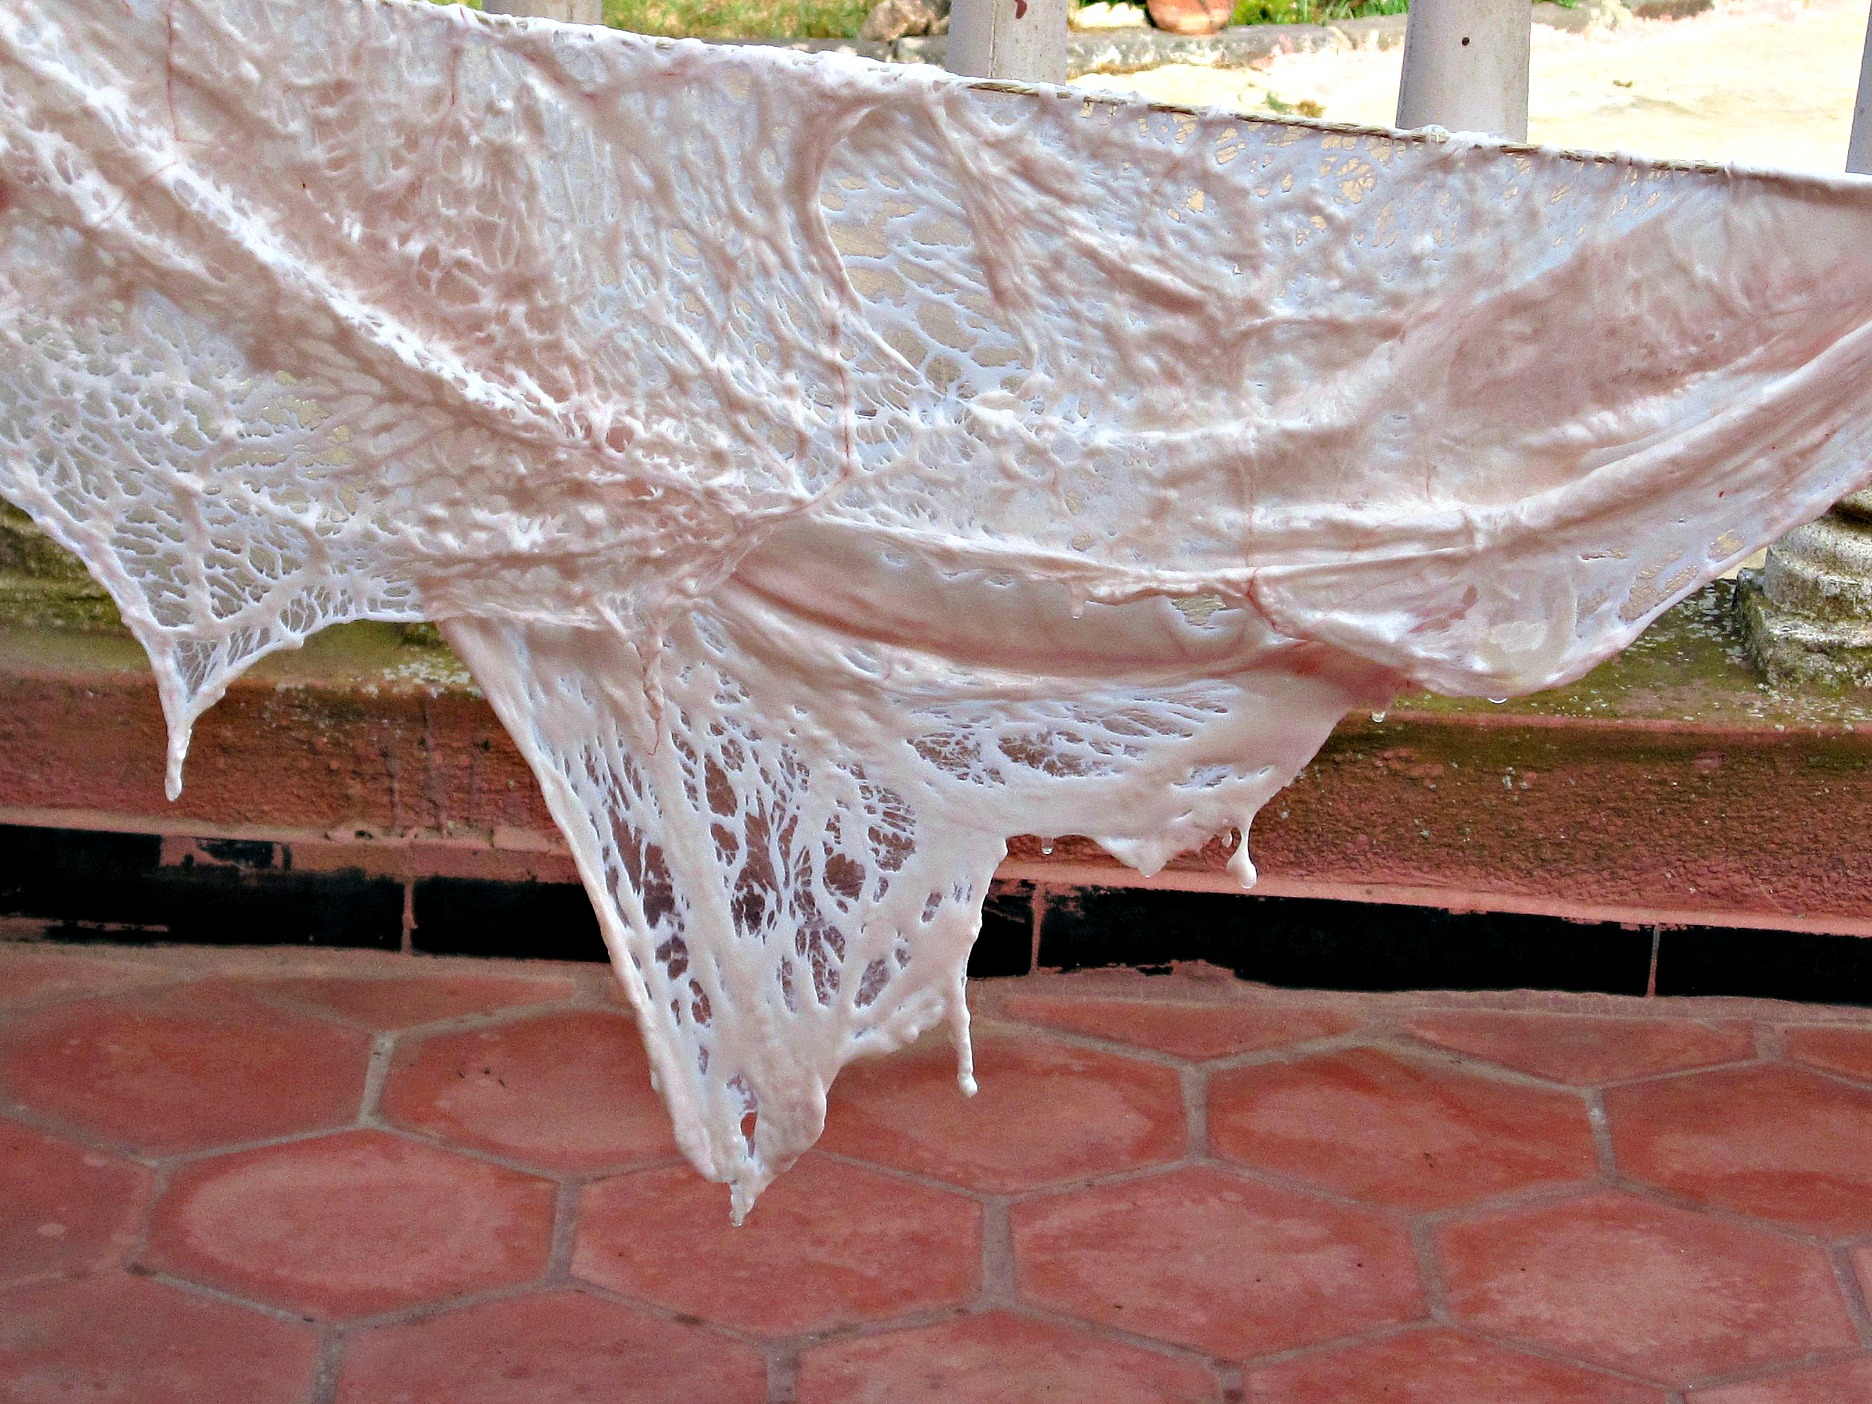 lacy caul fat hanging to dry